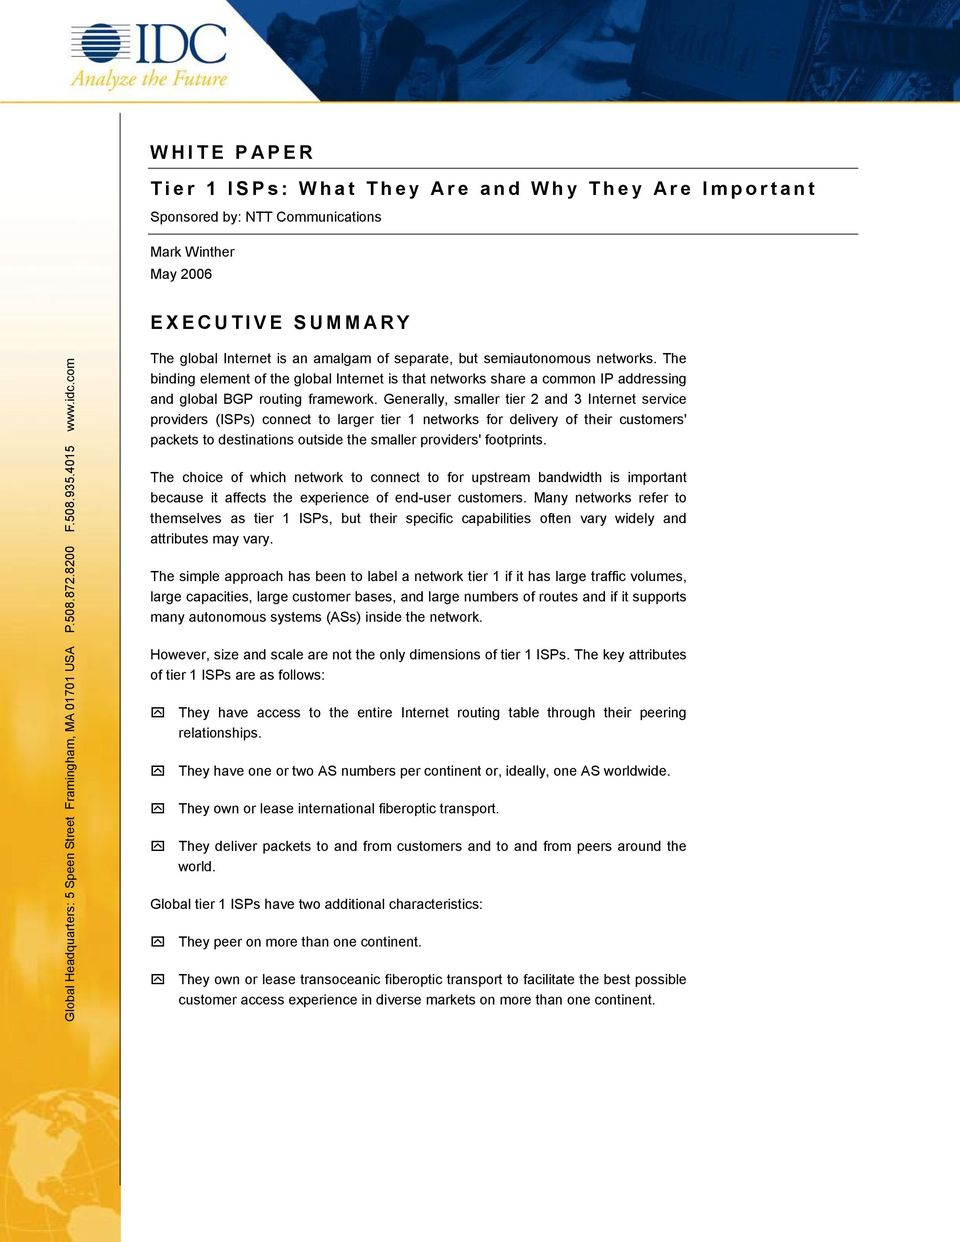 The binding element of the global Internet is that networks share a common IP addressing and global BGP routing framework.